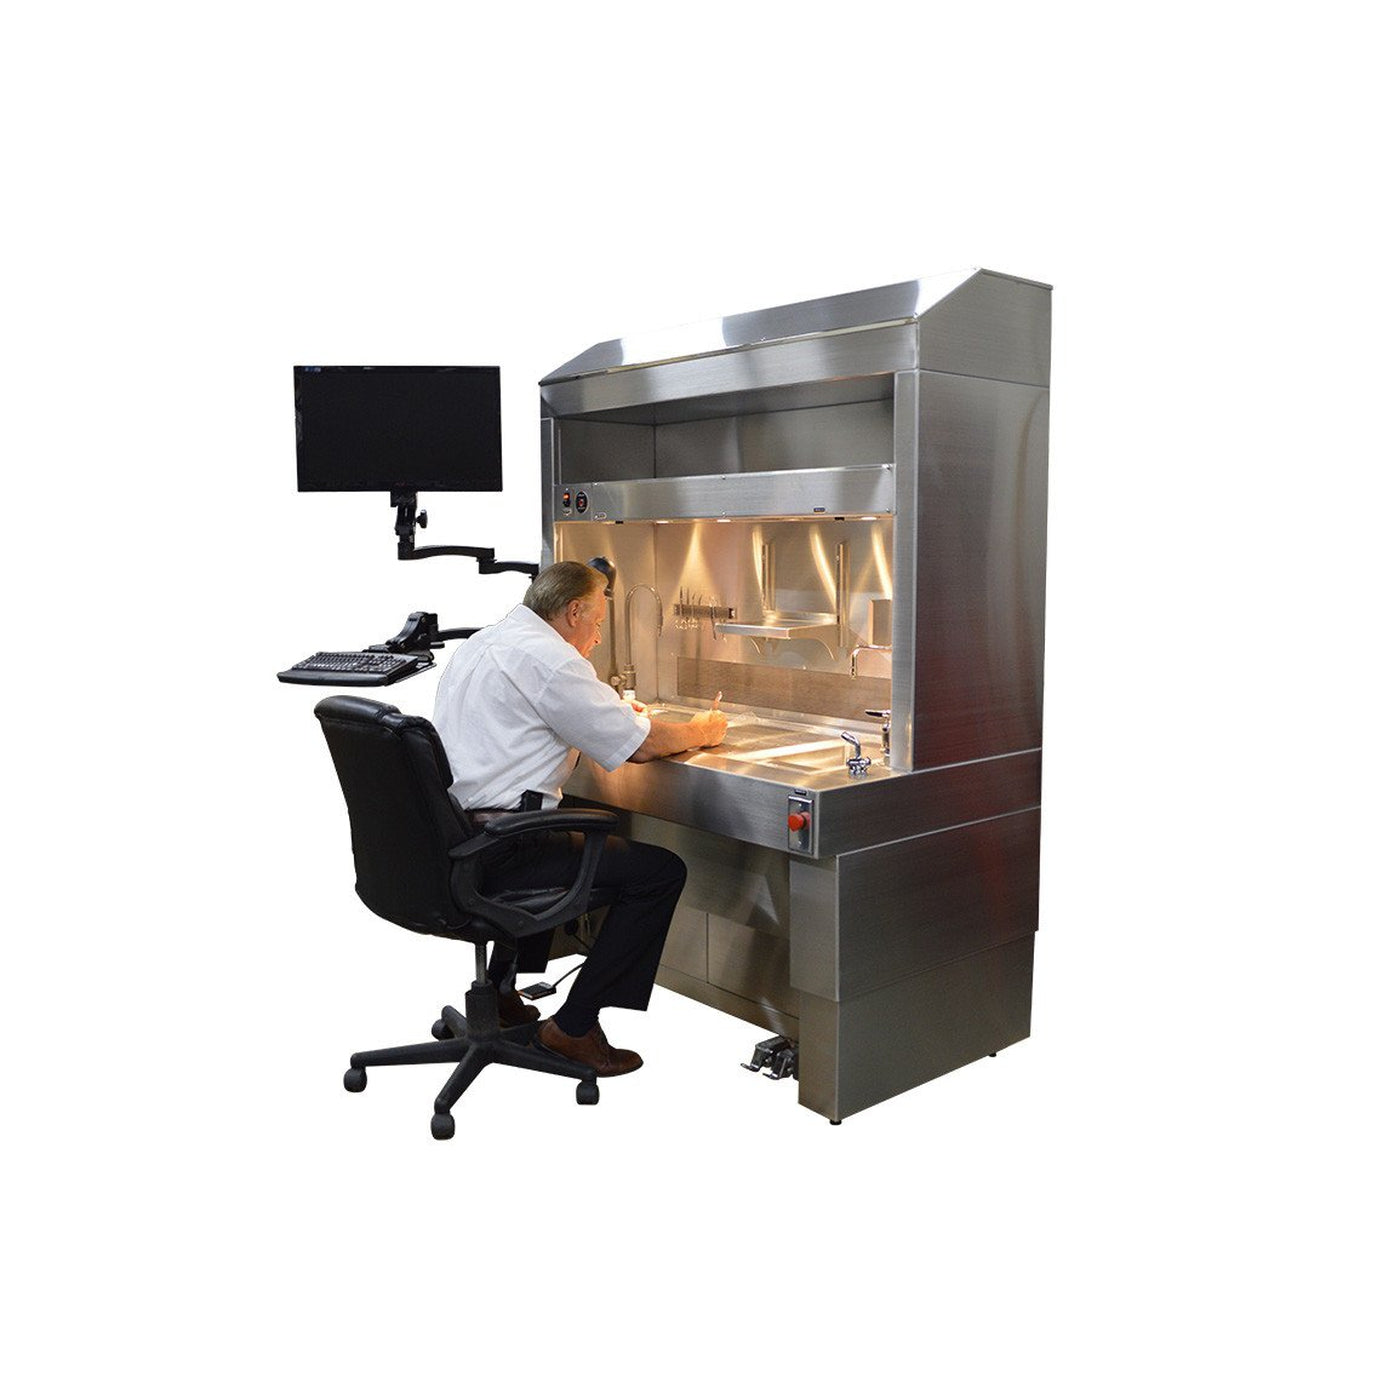 Elevating Pathology Workstation with Downdraft & Backdraft Ventilation-Pathology Grossing Stations-Mortech Manufacturing Company Inc. Quality Stainless Steel Autopsy, Morgue, Funeral Home, Necropsy, Veterinary / Anatomy, Dissection Equipment and Accessories